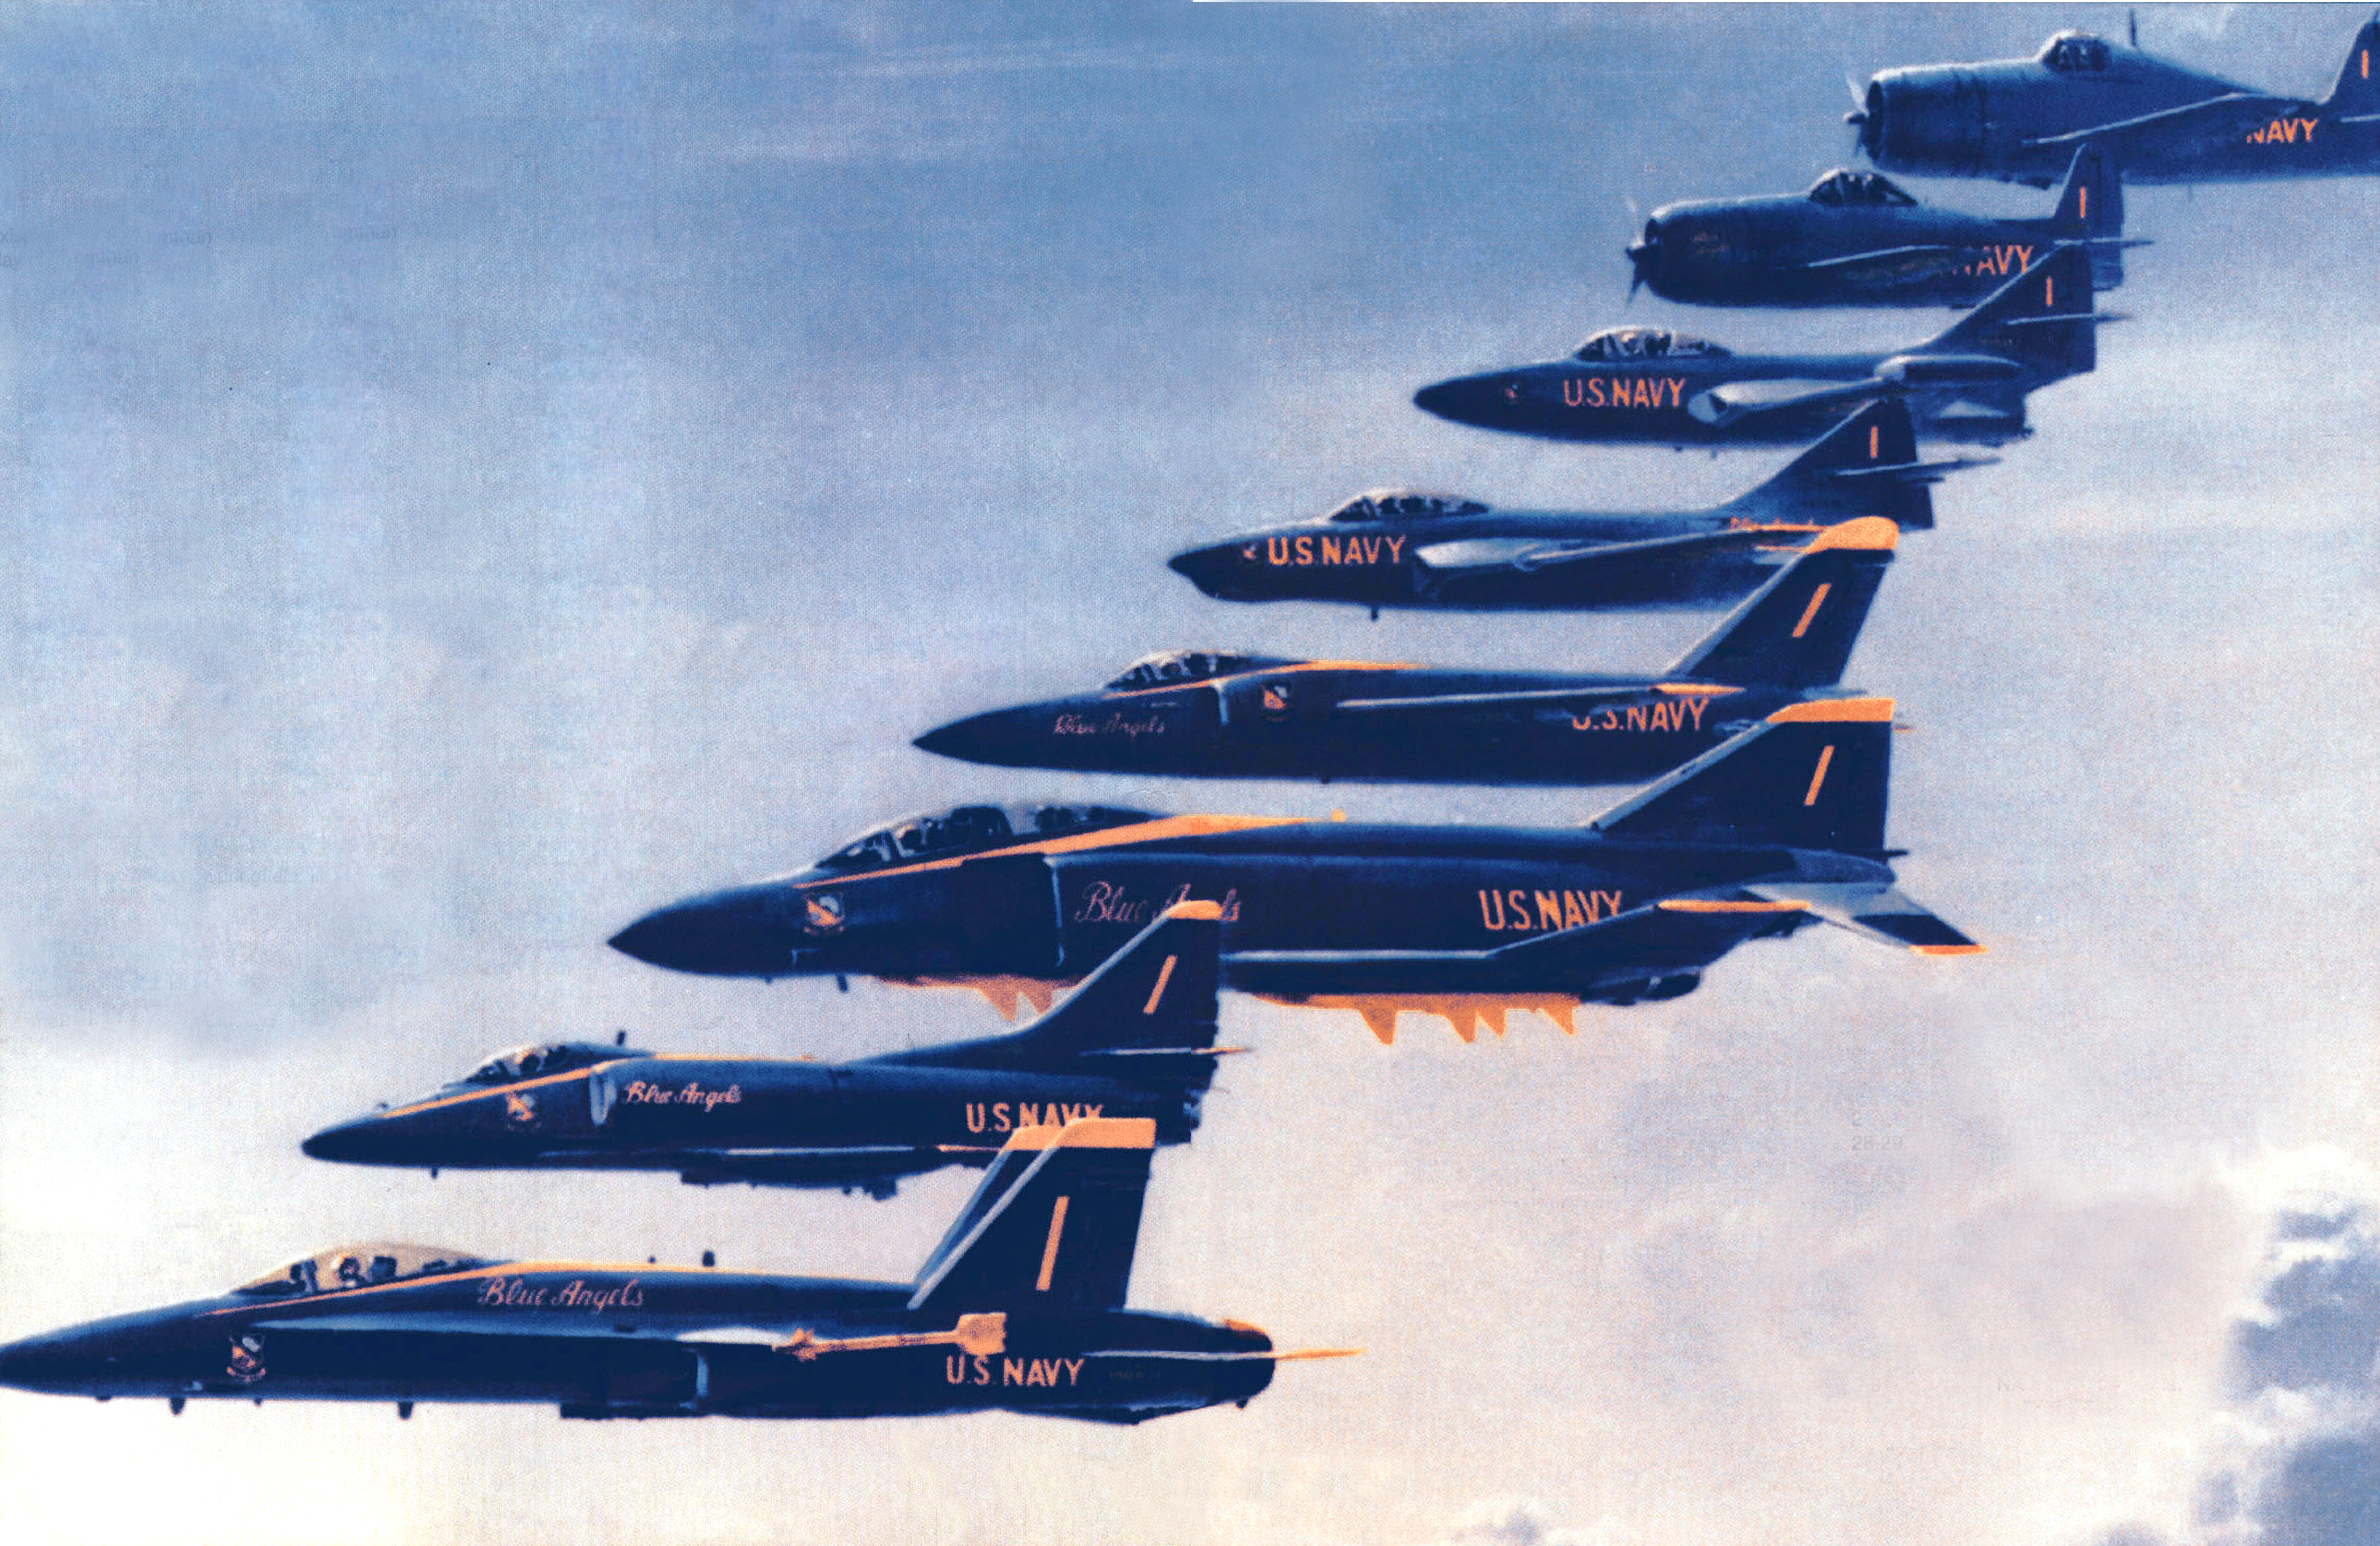 file:aircraft flownthe us navy blue angels 1946 to 1996